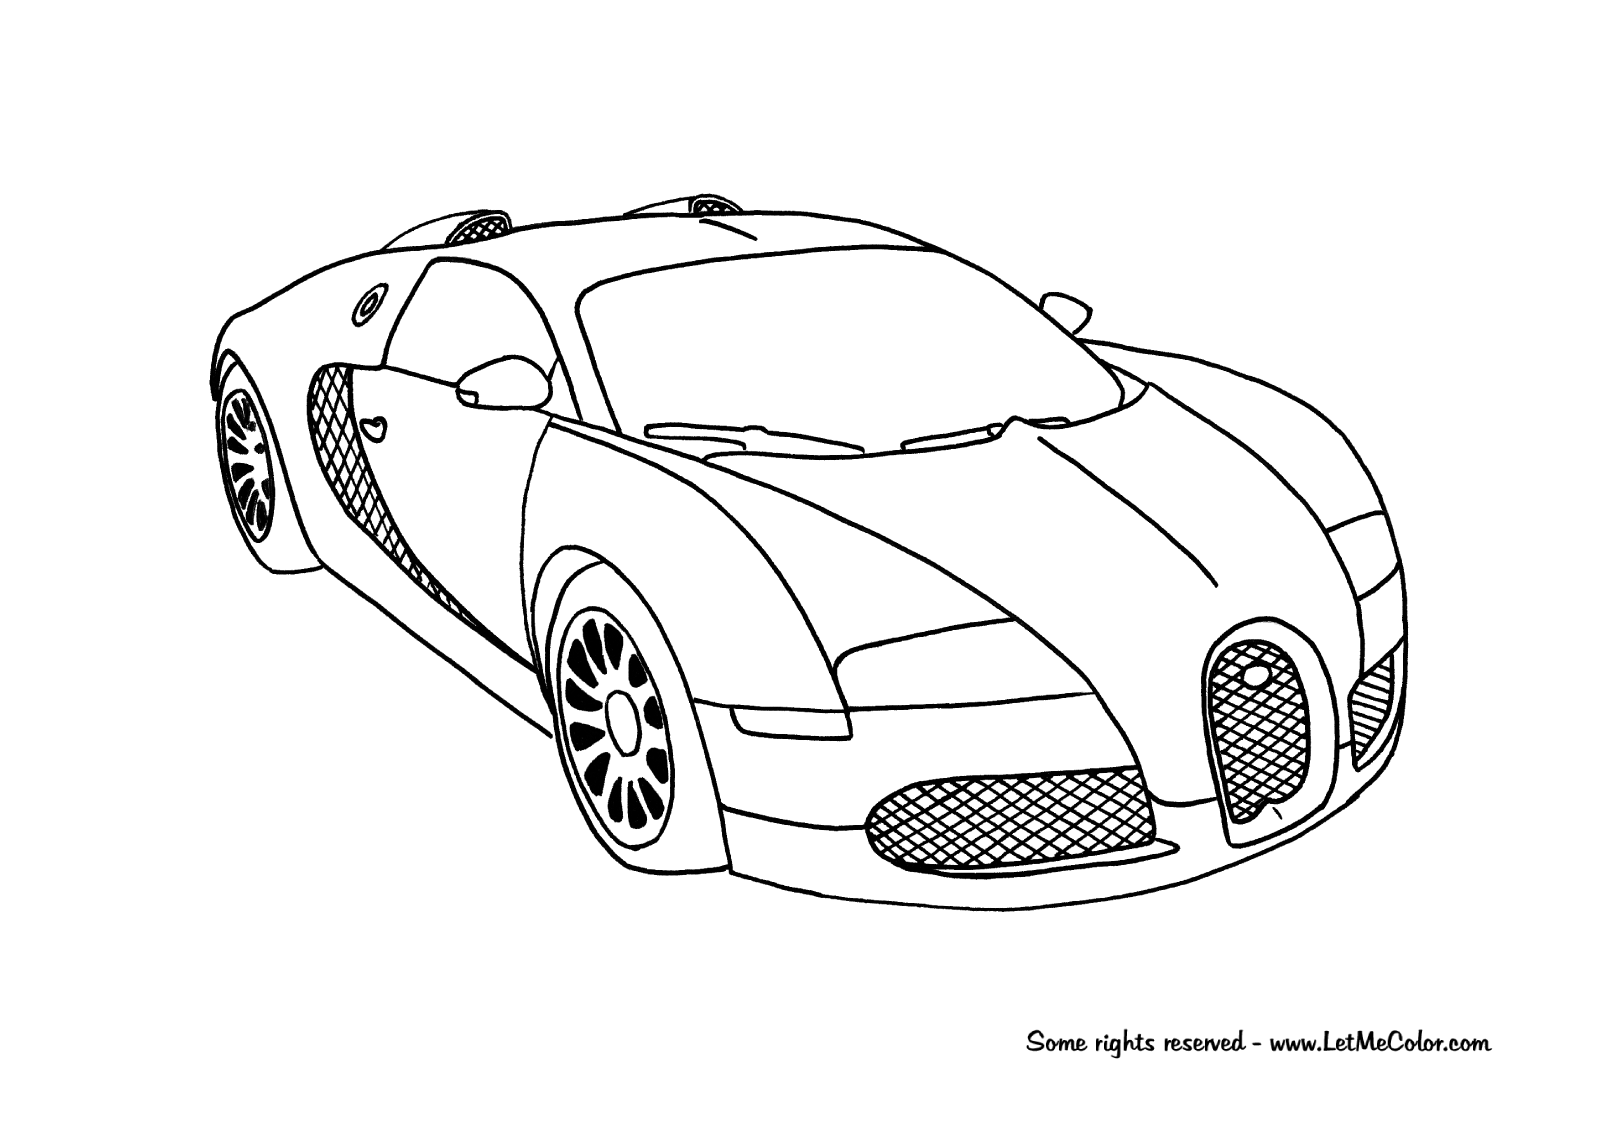 Bugatti Veyron Supercar Coloring Page Cars Coloring Pages Race Car Coloring Pages Bugatti Veyron